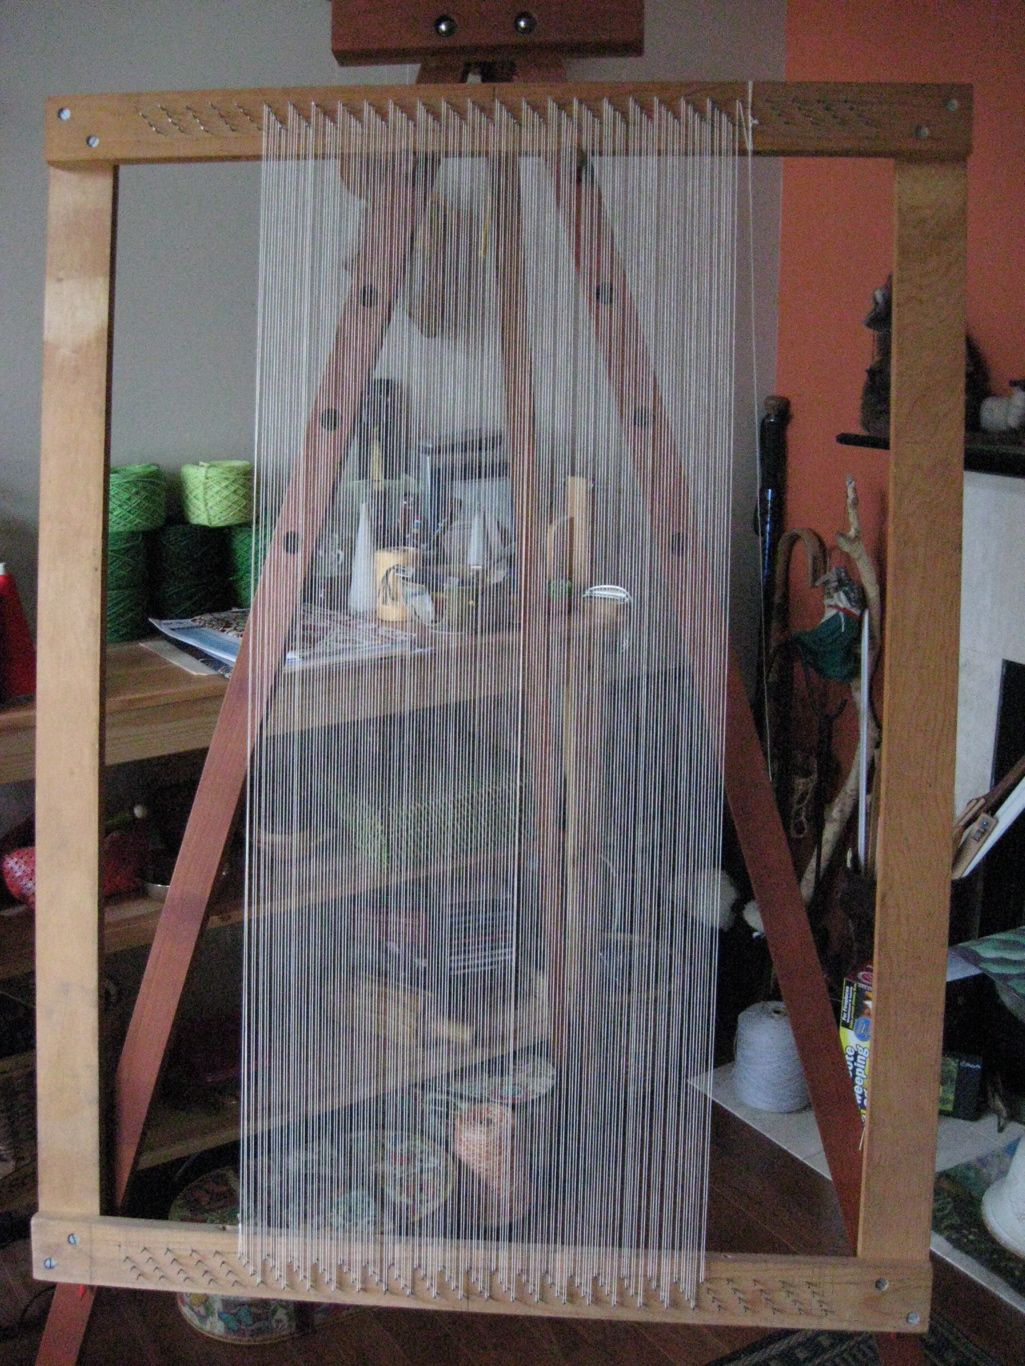 canvas stretcher loom simple frame loomon an easel